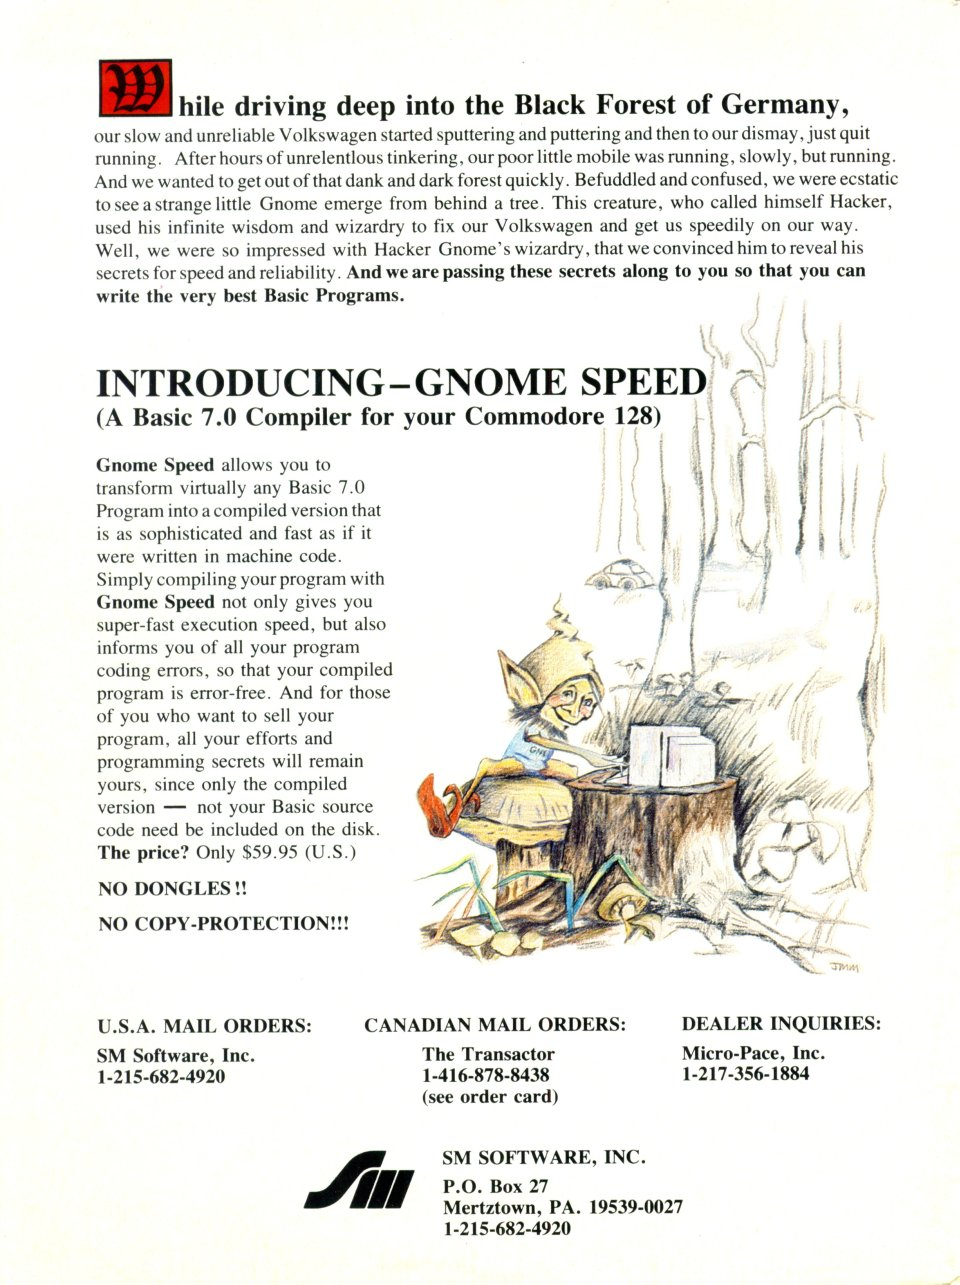 [Advertisement: GNOME Speed, a Basic 7.0 compiler for your Commodore 128 by SM Software, Inc.]